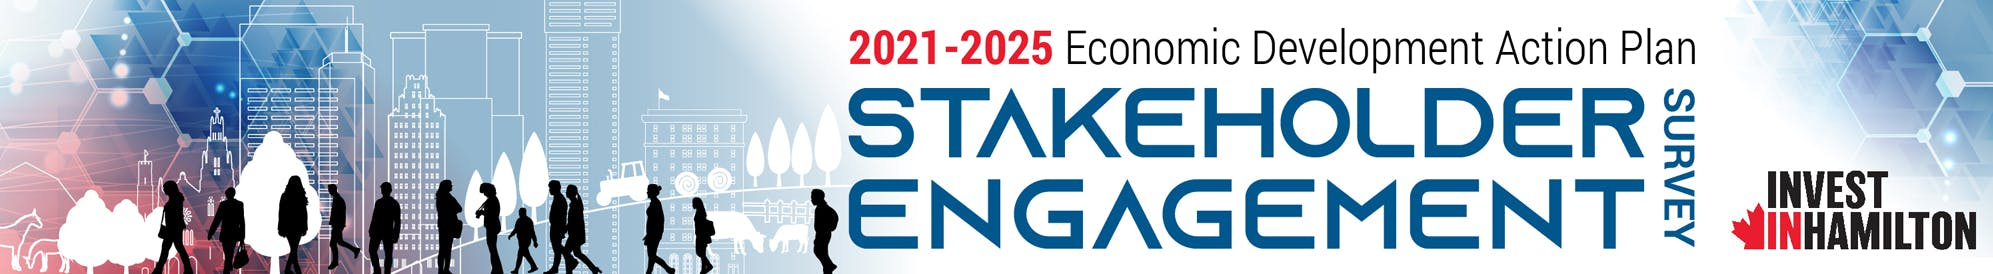 "Illustration of silhouettes of people on a background of cityscapes with text ""2021-2025 Economic Development Action Plan Stake Holder Engagement Survey"""